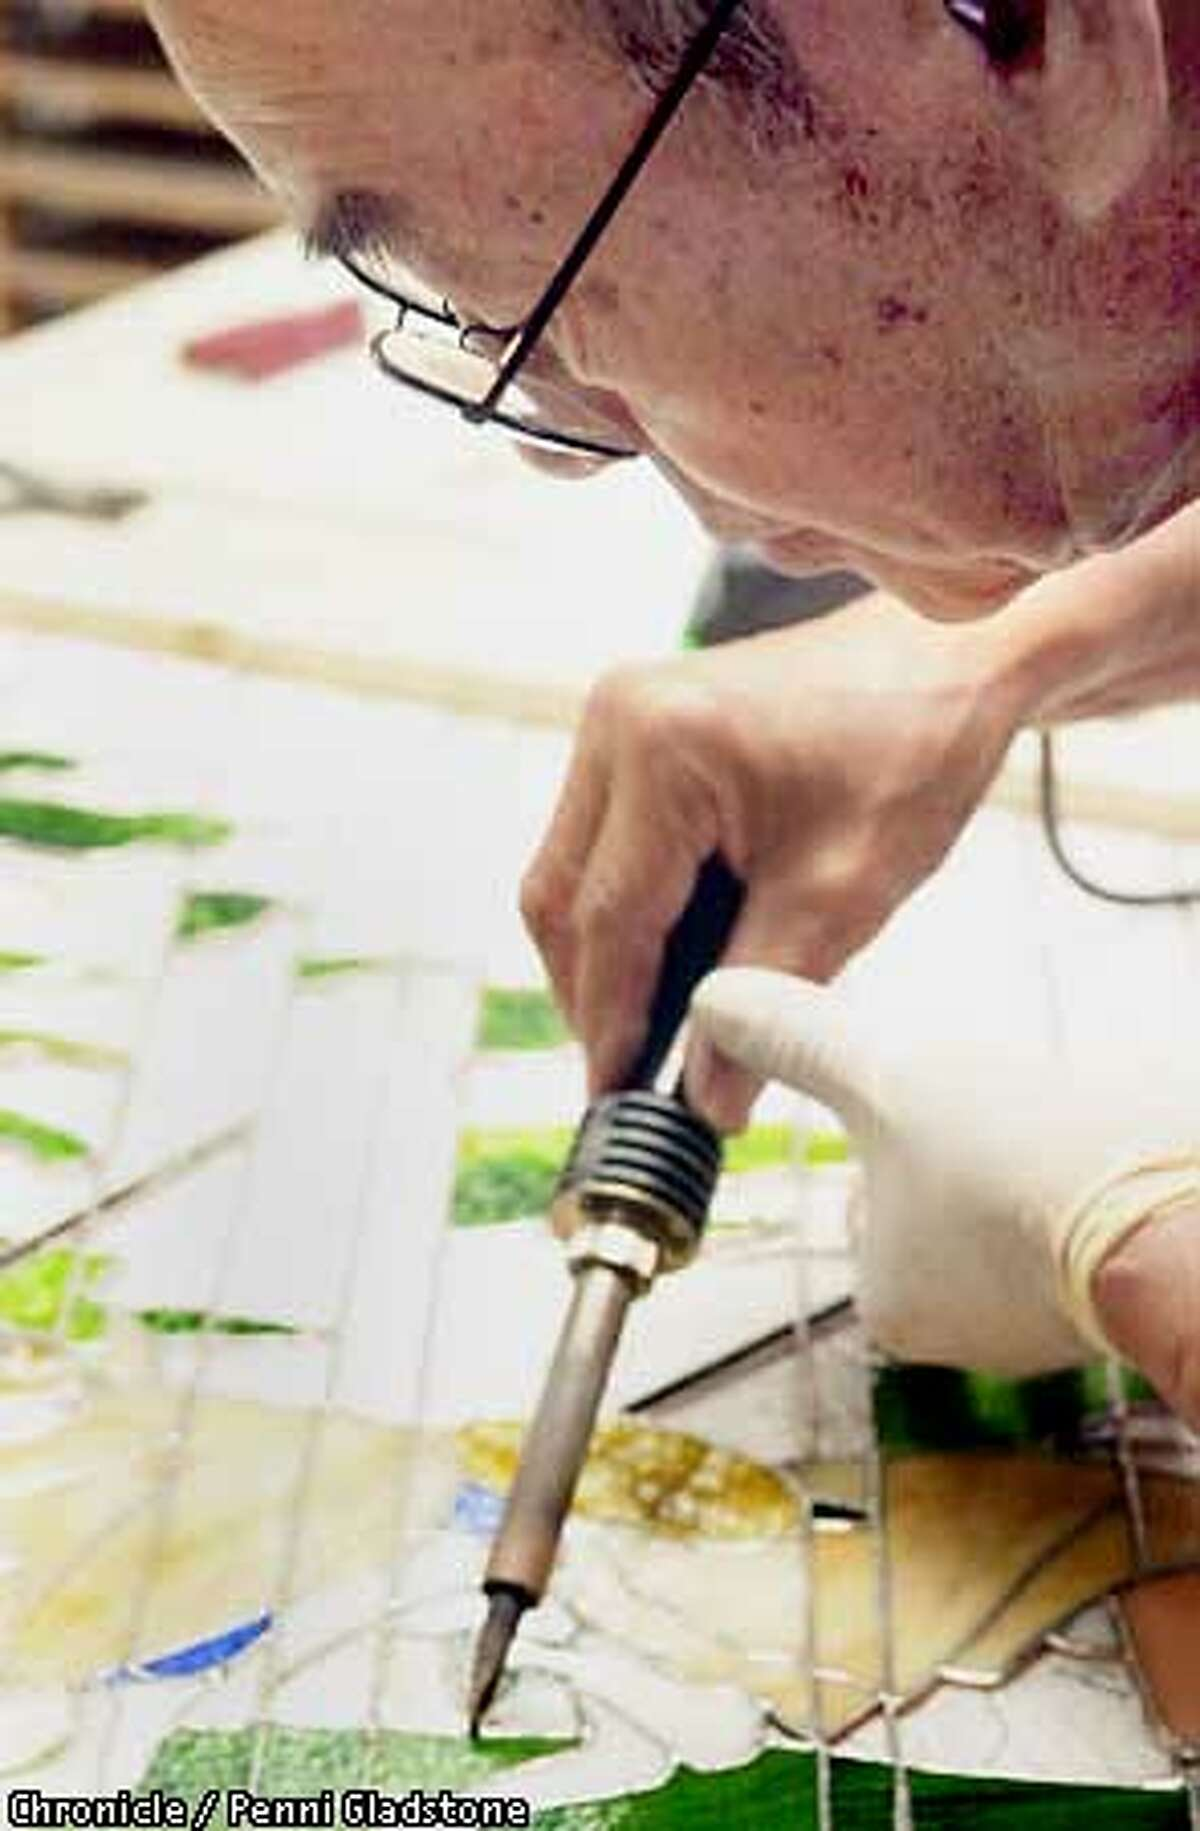 """Aanraku, stained glass studio in San Mateo. Profiled is """"Grandpa,'' Yoshinori Yakao a 79-year-old Japanese cook and swordsman,who started taking classes three years ago and now has a national reputation. Soldering a project CHRONICLE PHOTO BY PENNI GLADSTONE"""